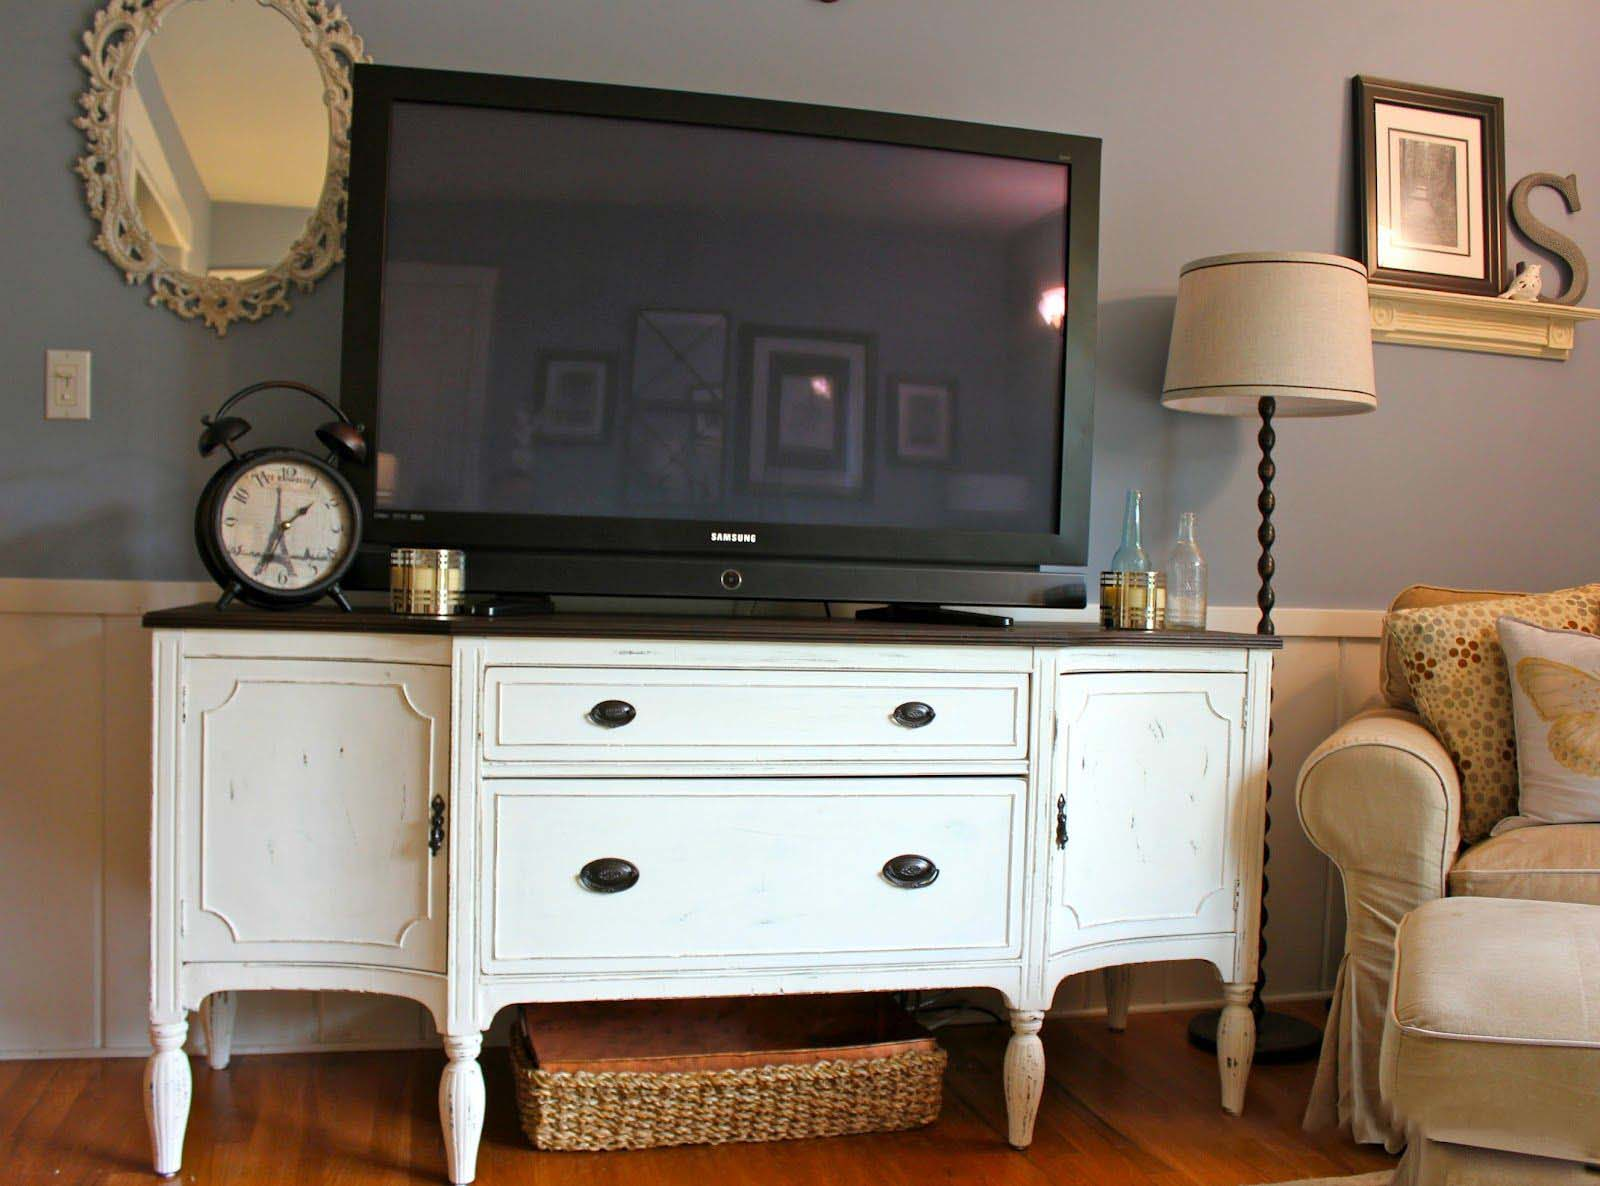 Can I Use a Sideboard as a TV Stand?